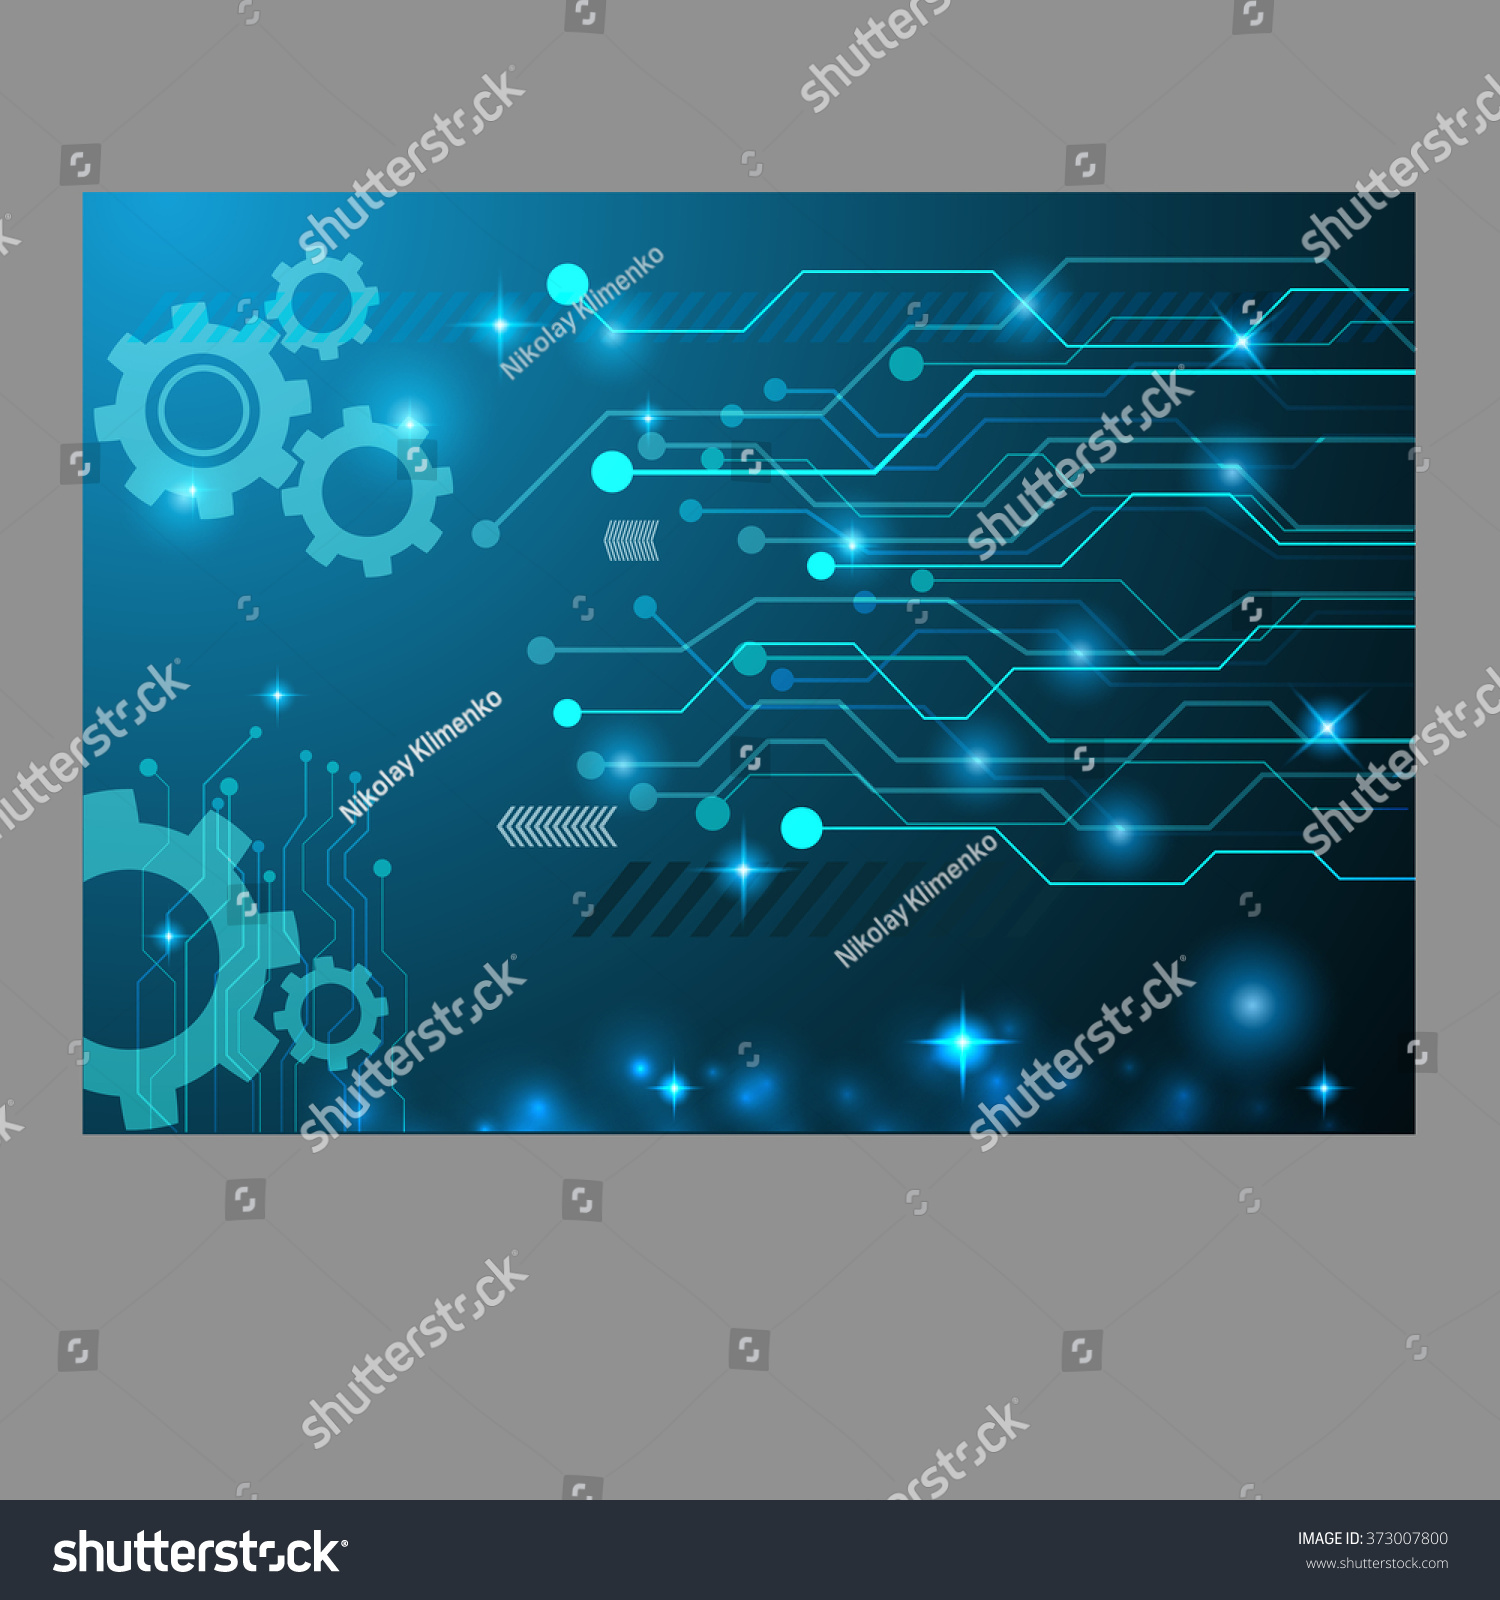 Abstract Technology Gear Circuit Board Vector Stock Royalty Background Design Eps 10